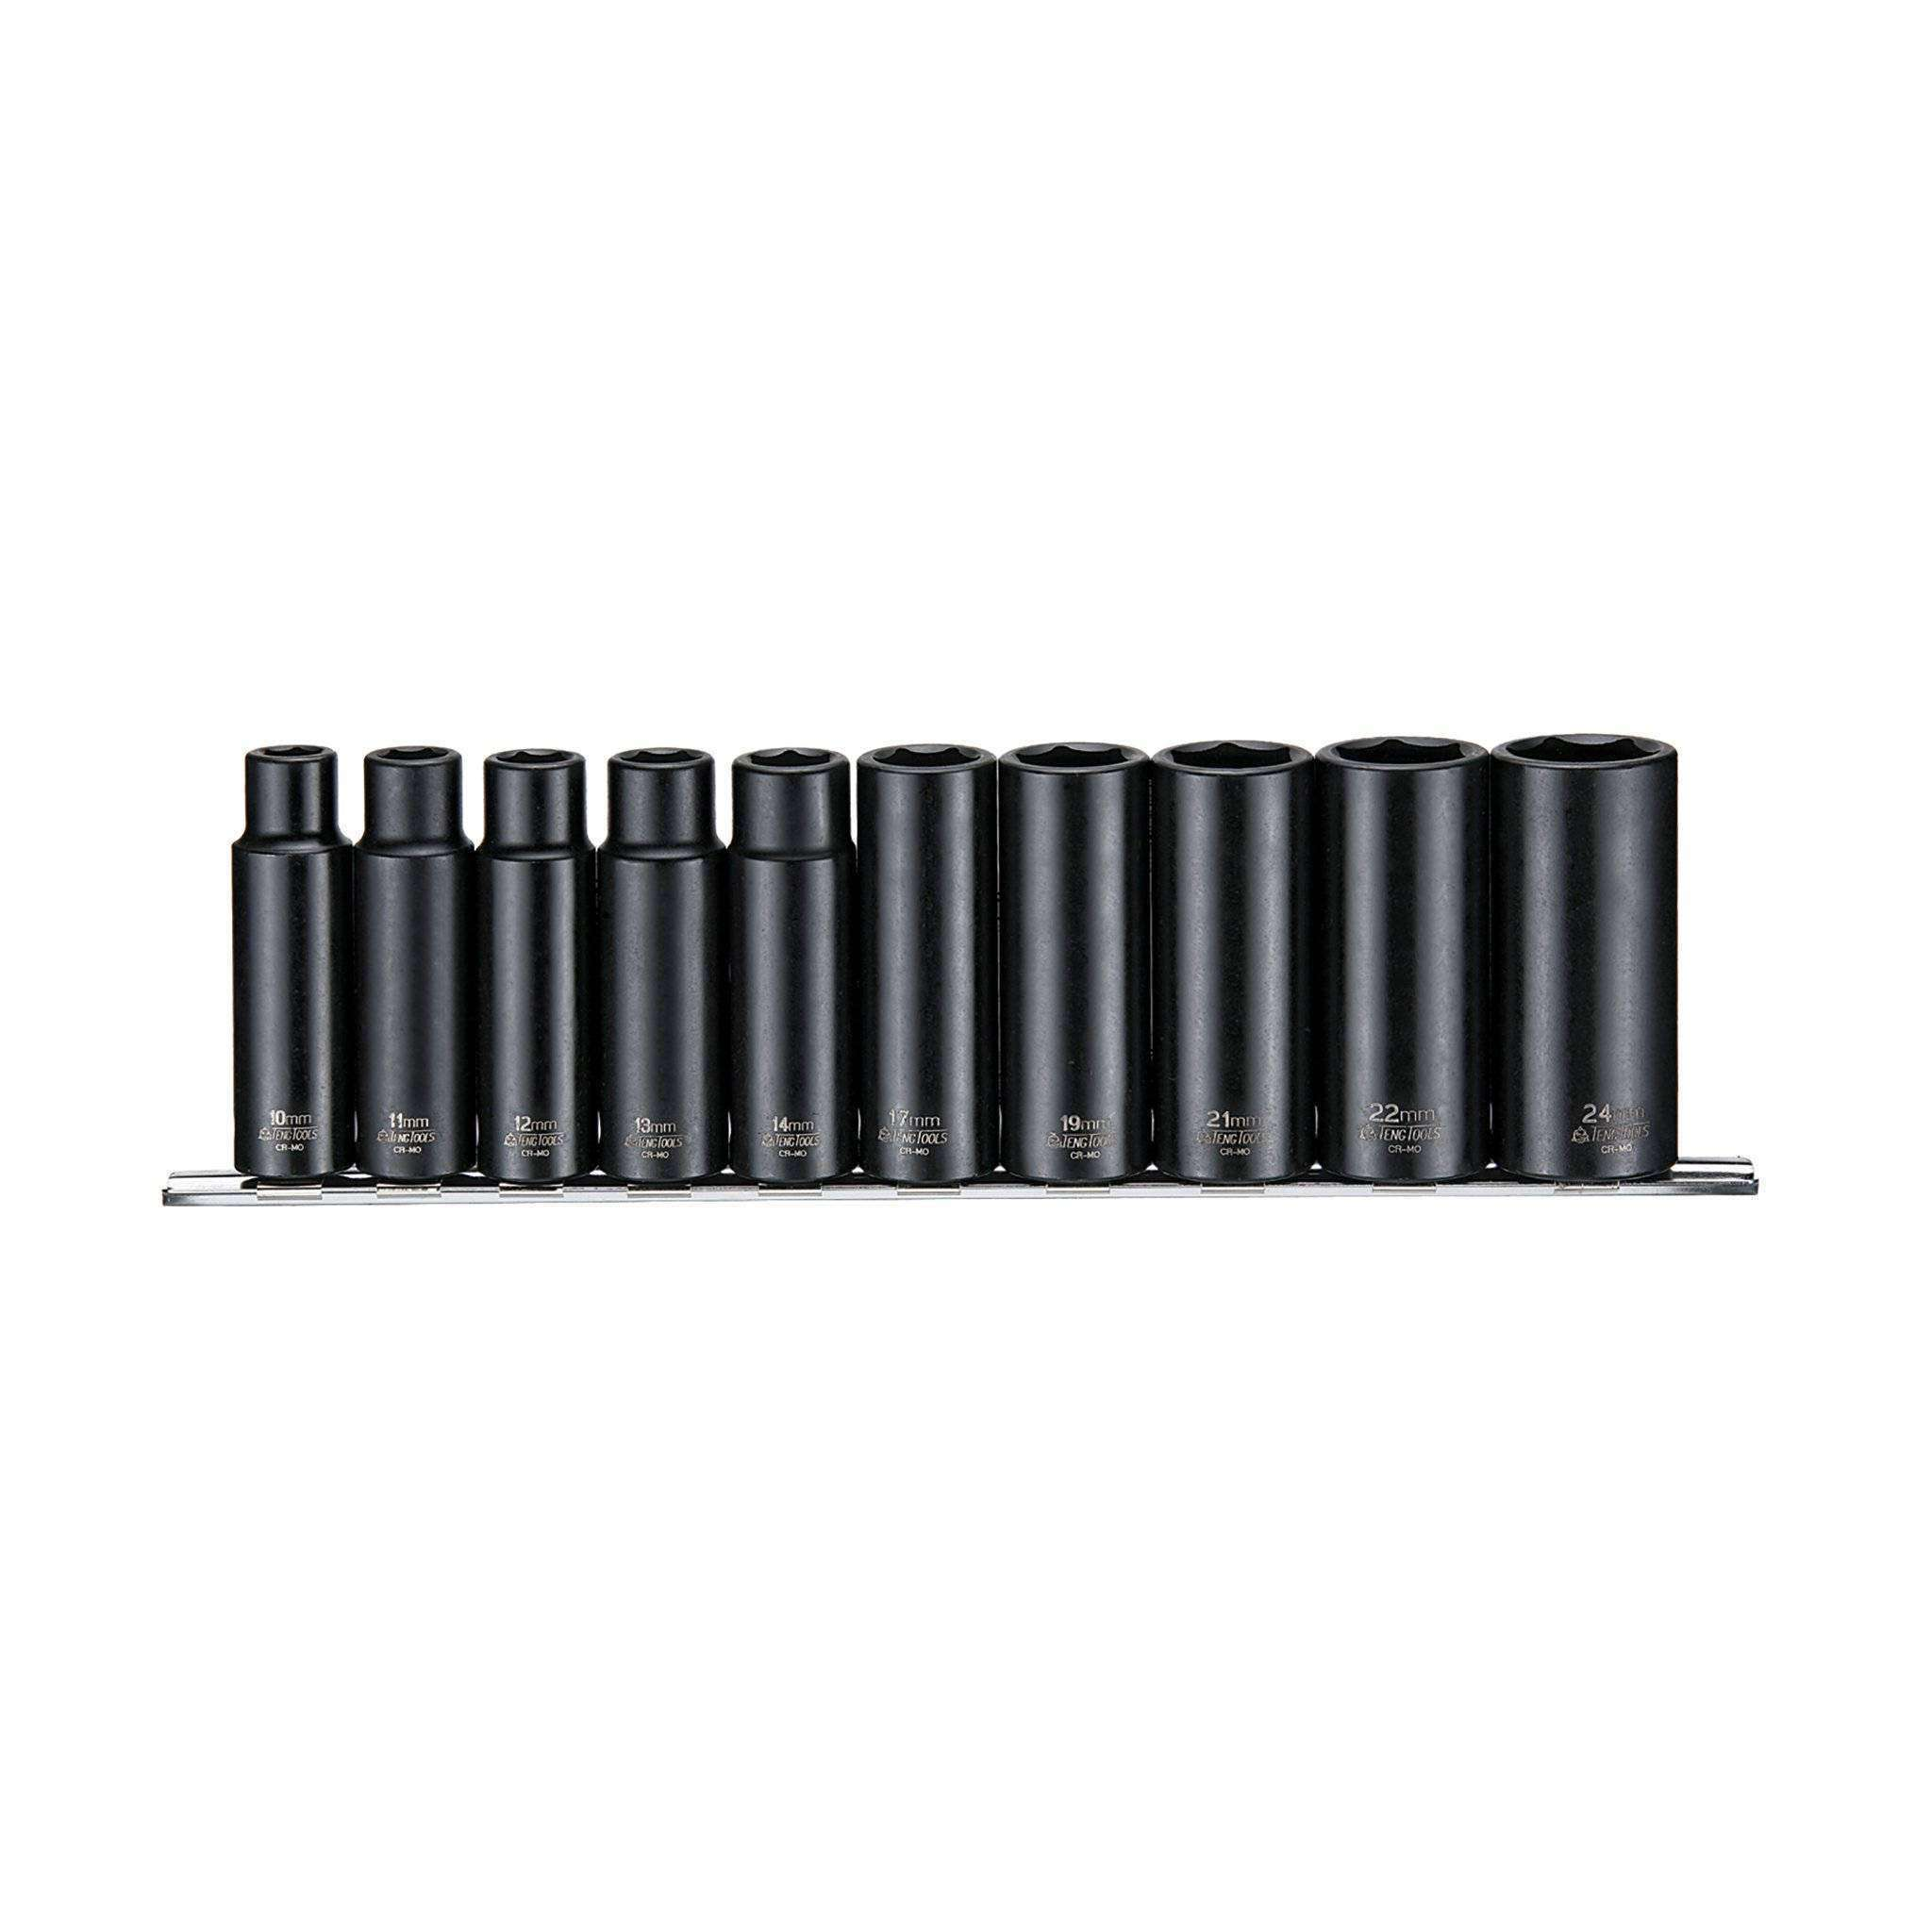 10 Piece 1/2 Inch Drive 6 Point Deep Metric Impact Socket Set - Teng Tools 9126 - Teng Tools USA